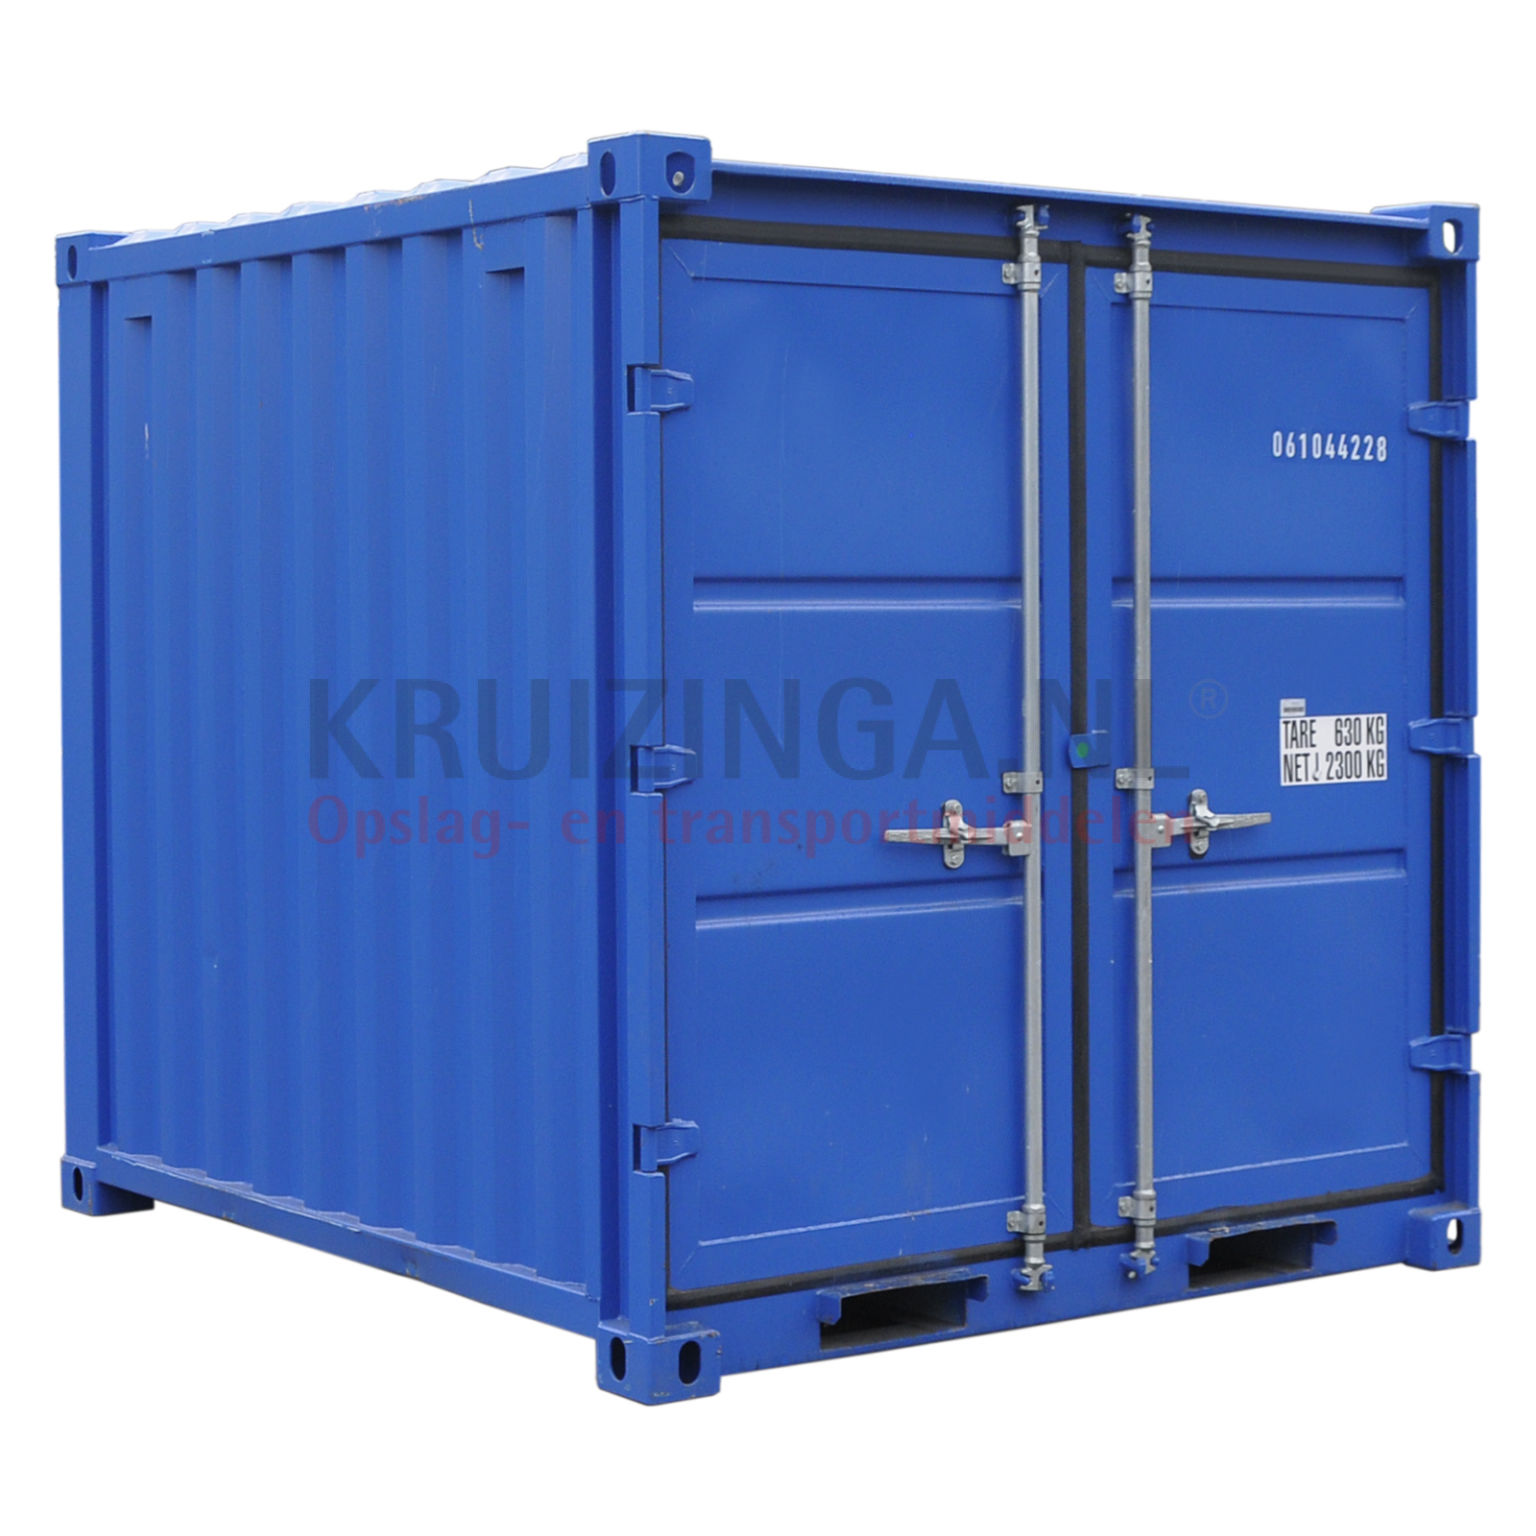 container materieelcontainer 8 ft gebruikt. Black Bedroom Furniture Sets. Home Design Ideas